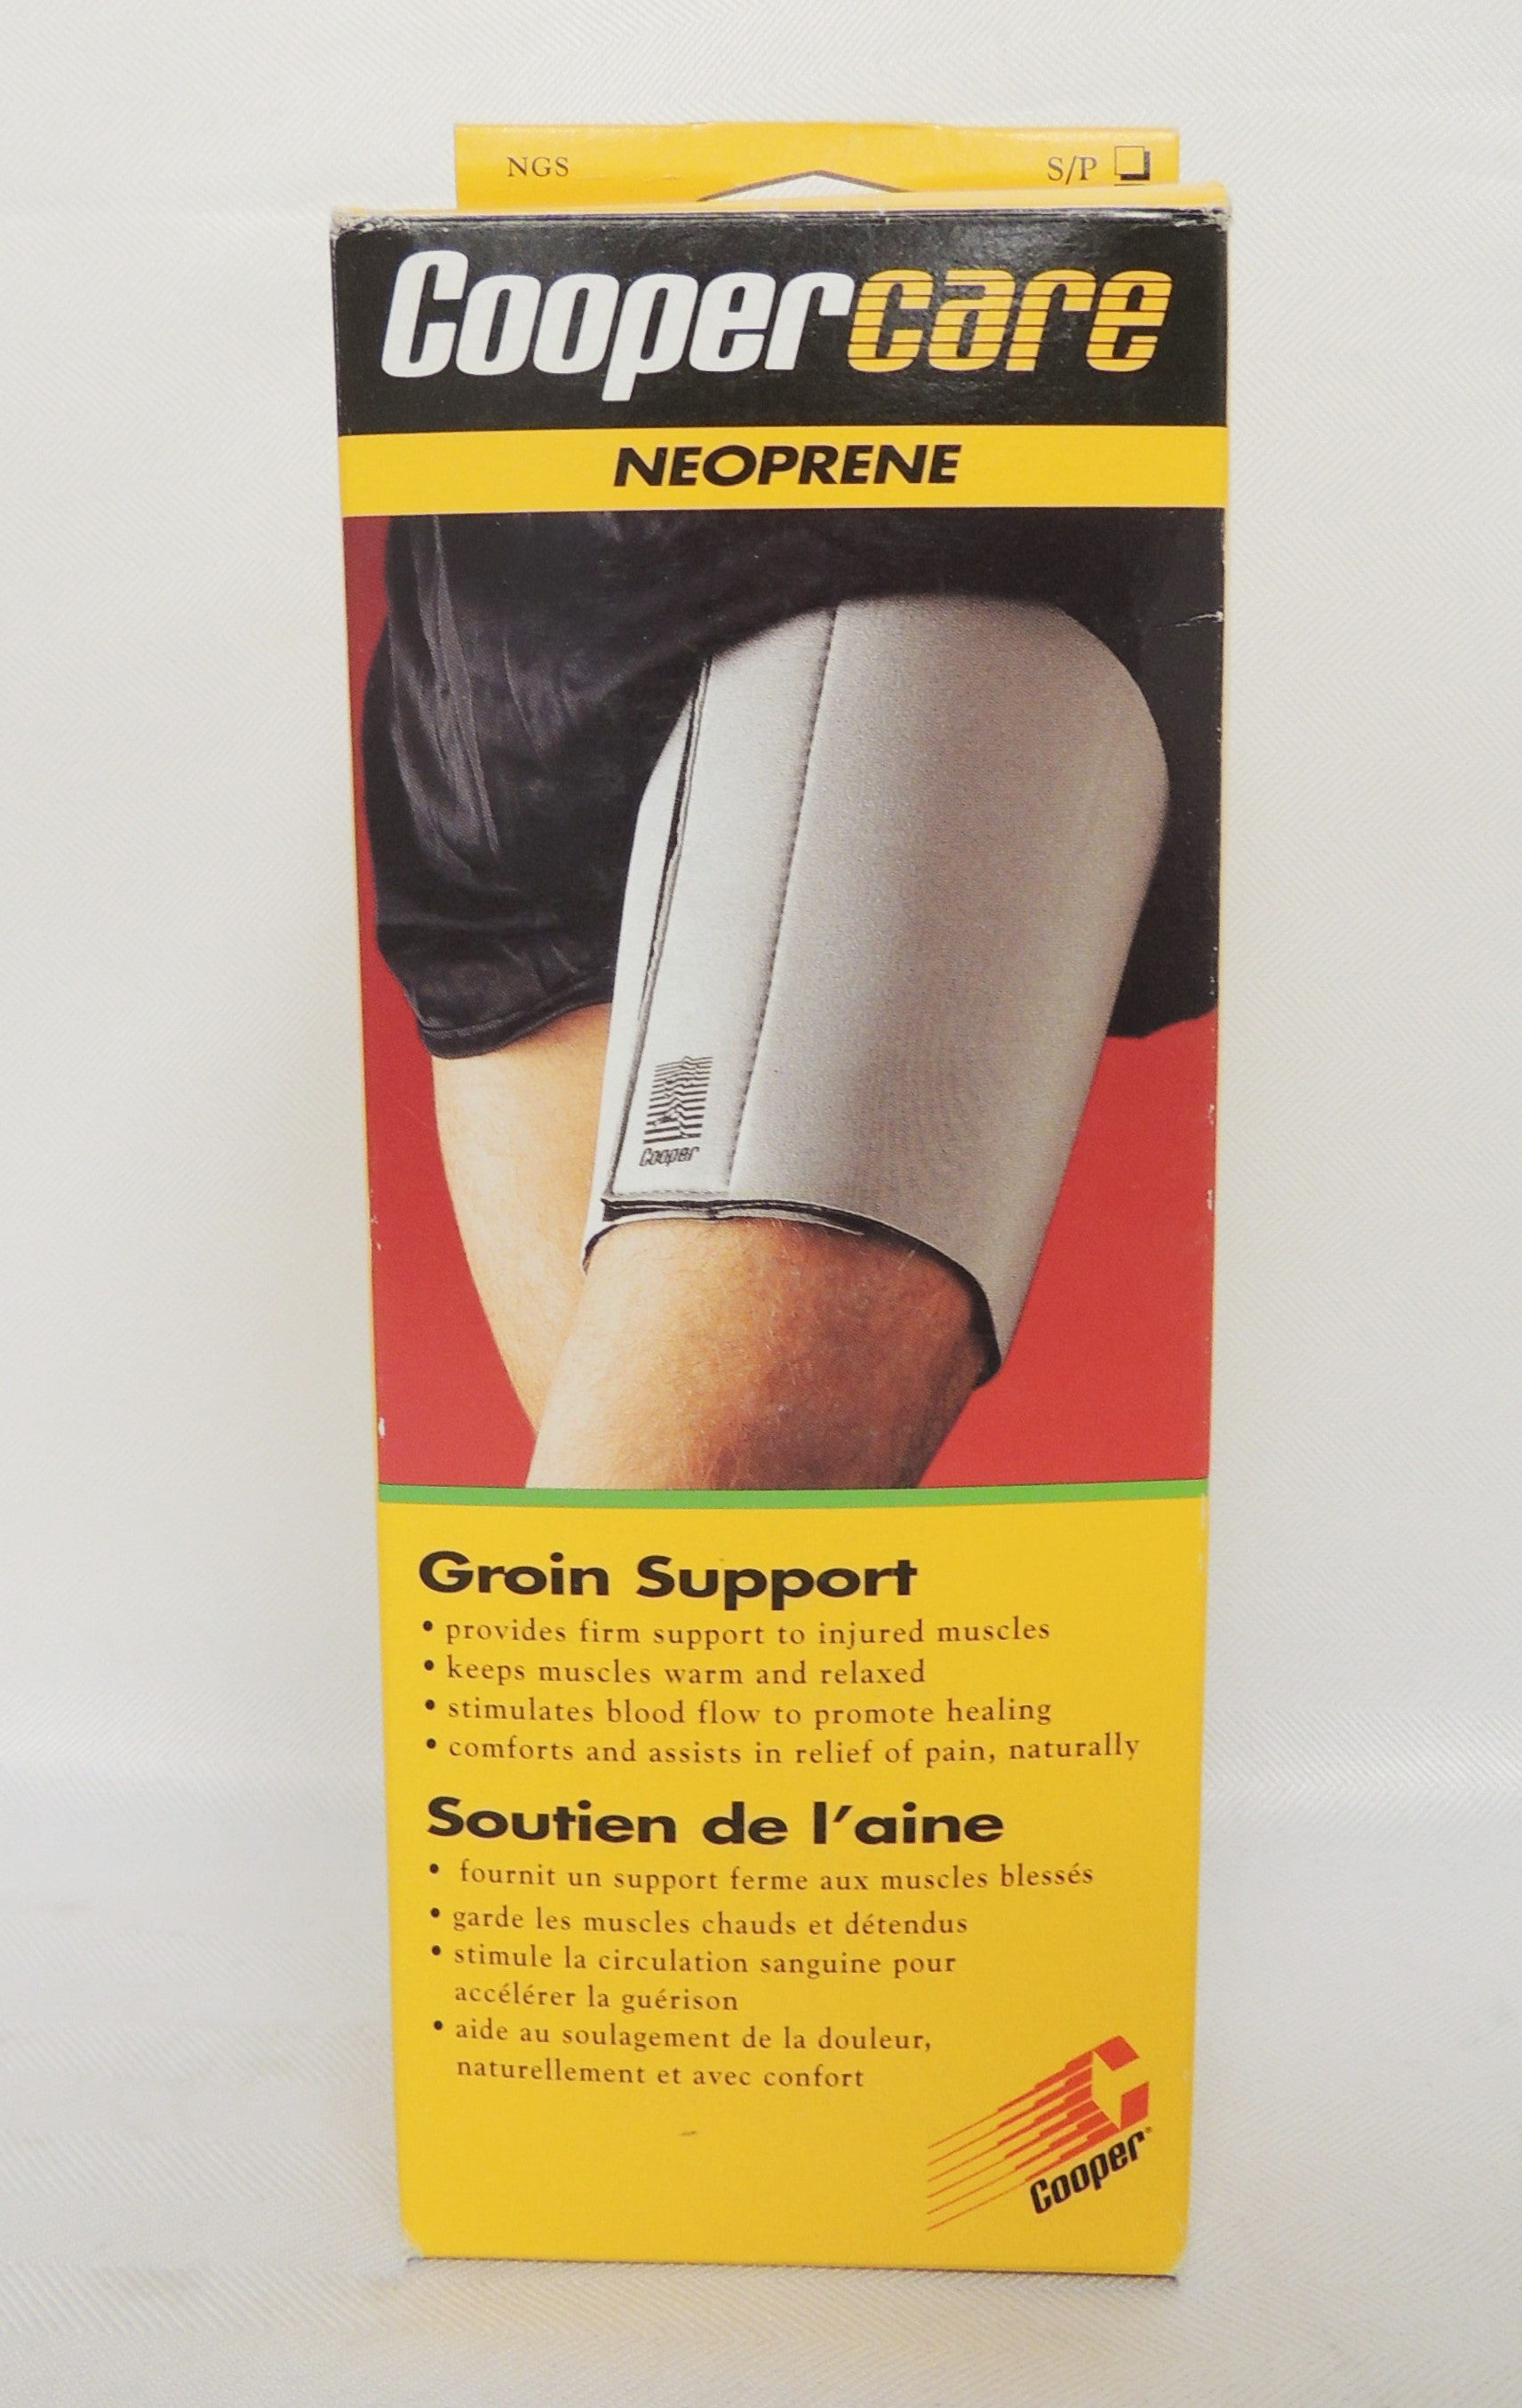 Coopercare NeopreneGroin Support keeps muscles warm and relaxed XL size